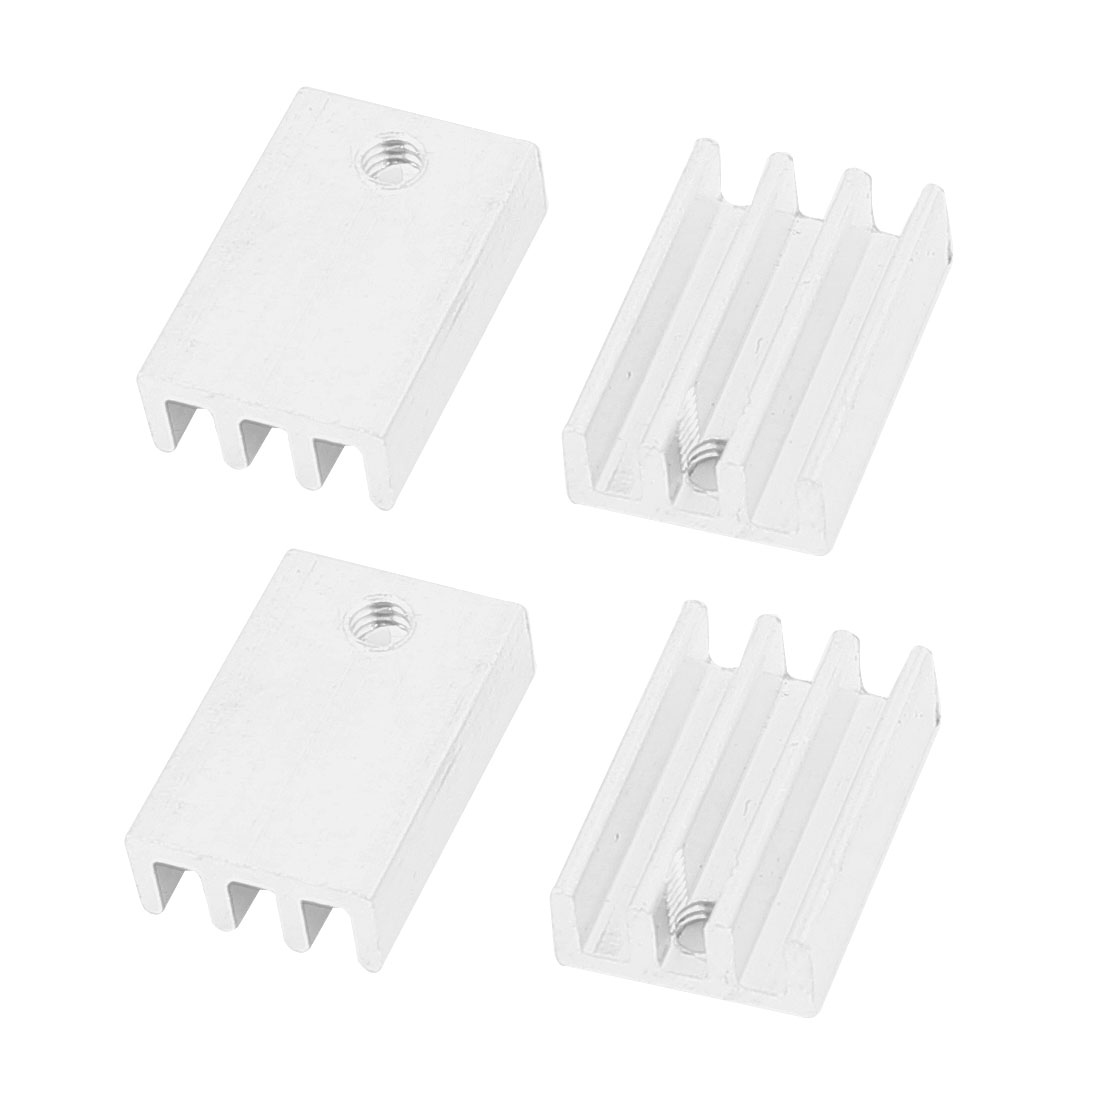 4 Pcs Aluminium 17 x 11 x 5mm Rectangle Heatsink Cooling Cooler Fin